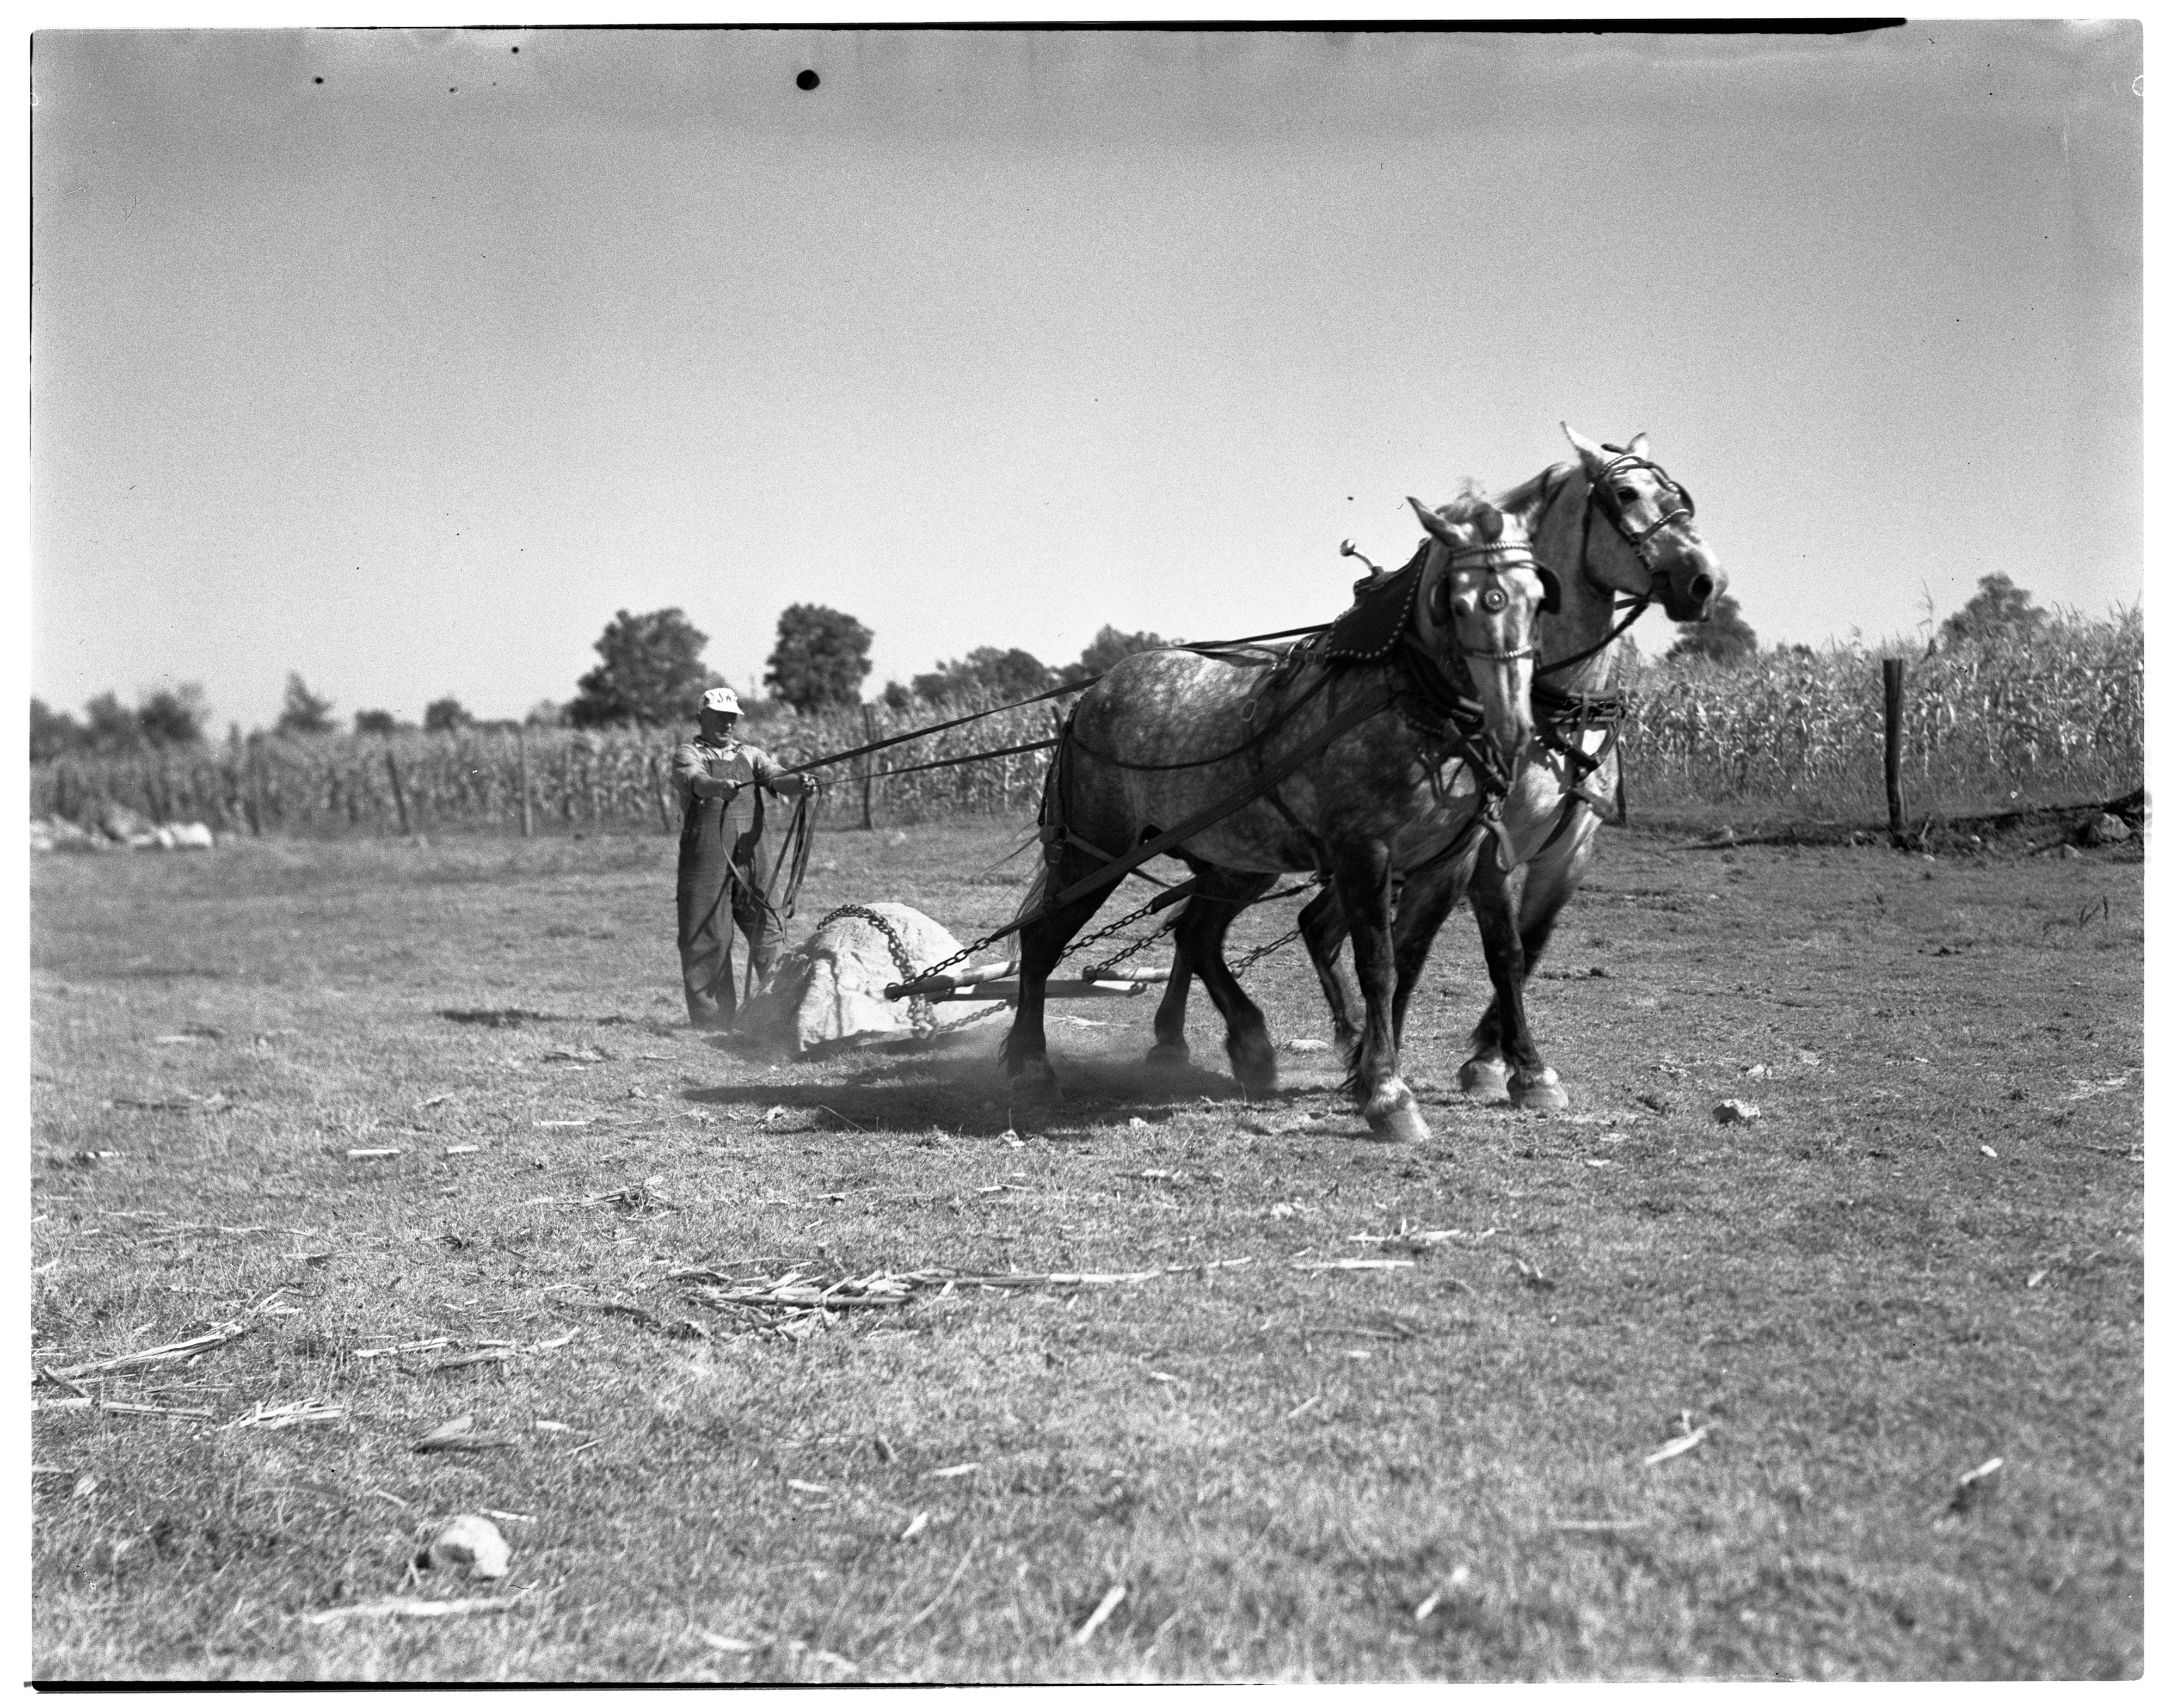 Fred Braun & His Horse Pulling Team, August 1936 image